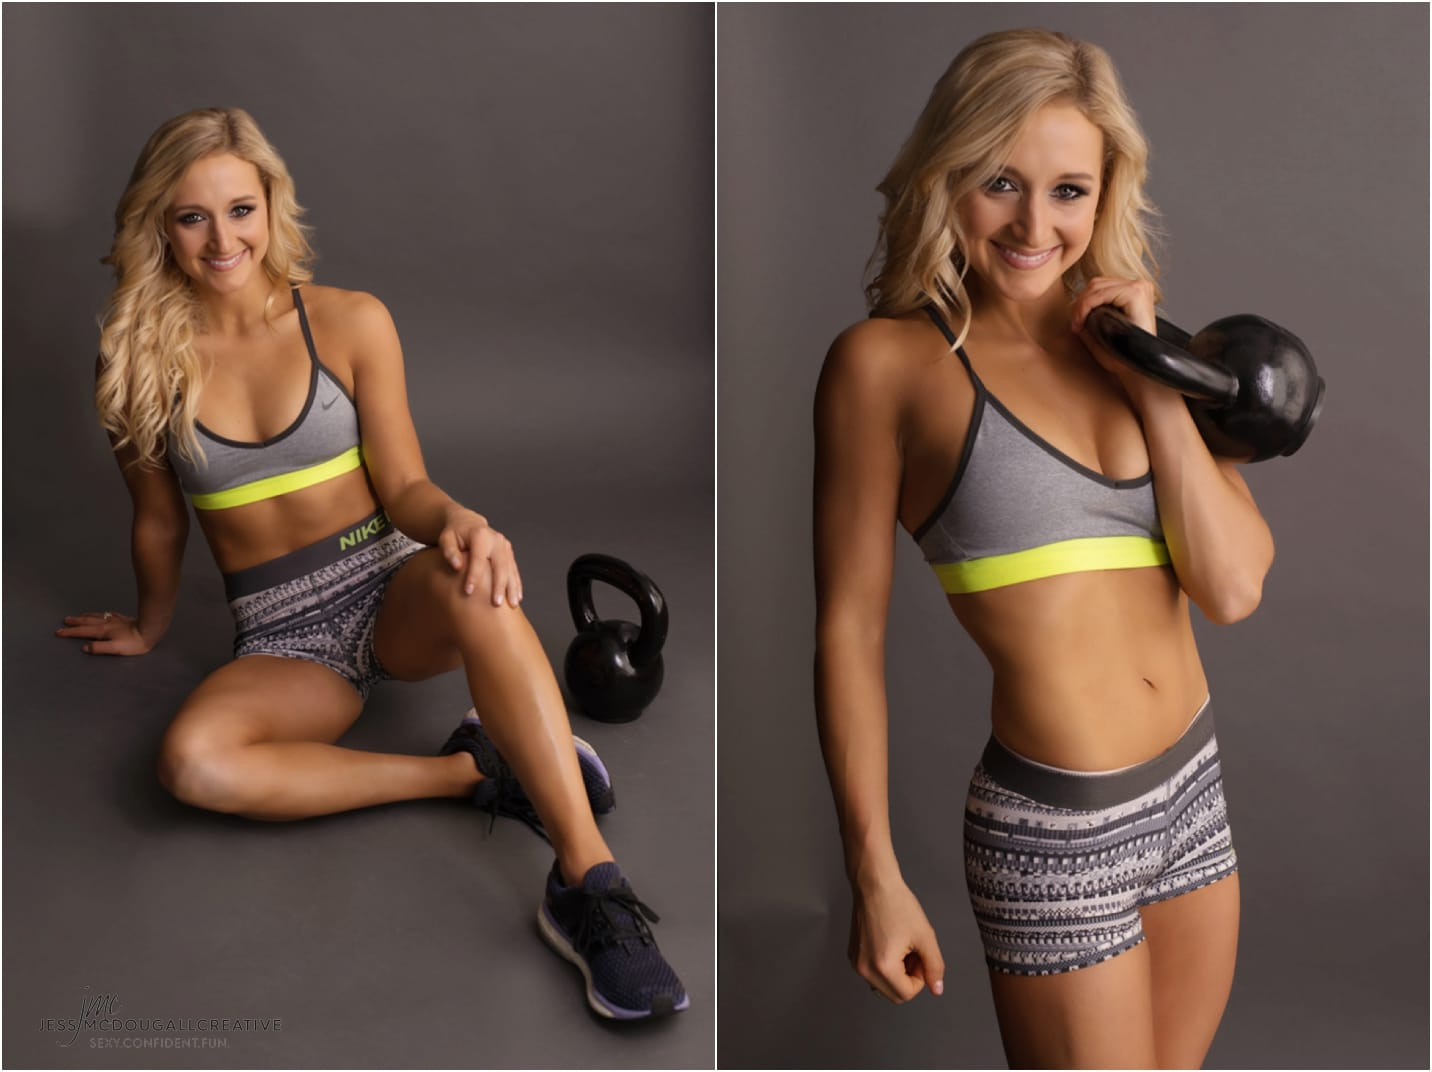 Boston-Fitness-Photographer-Jess-McDougall-Creative-5